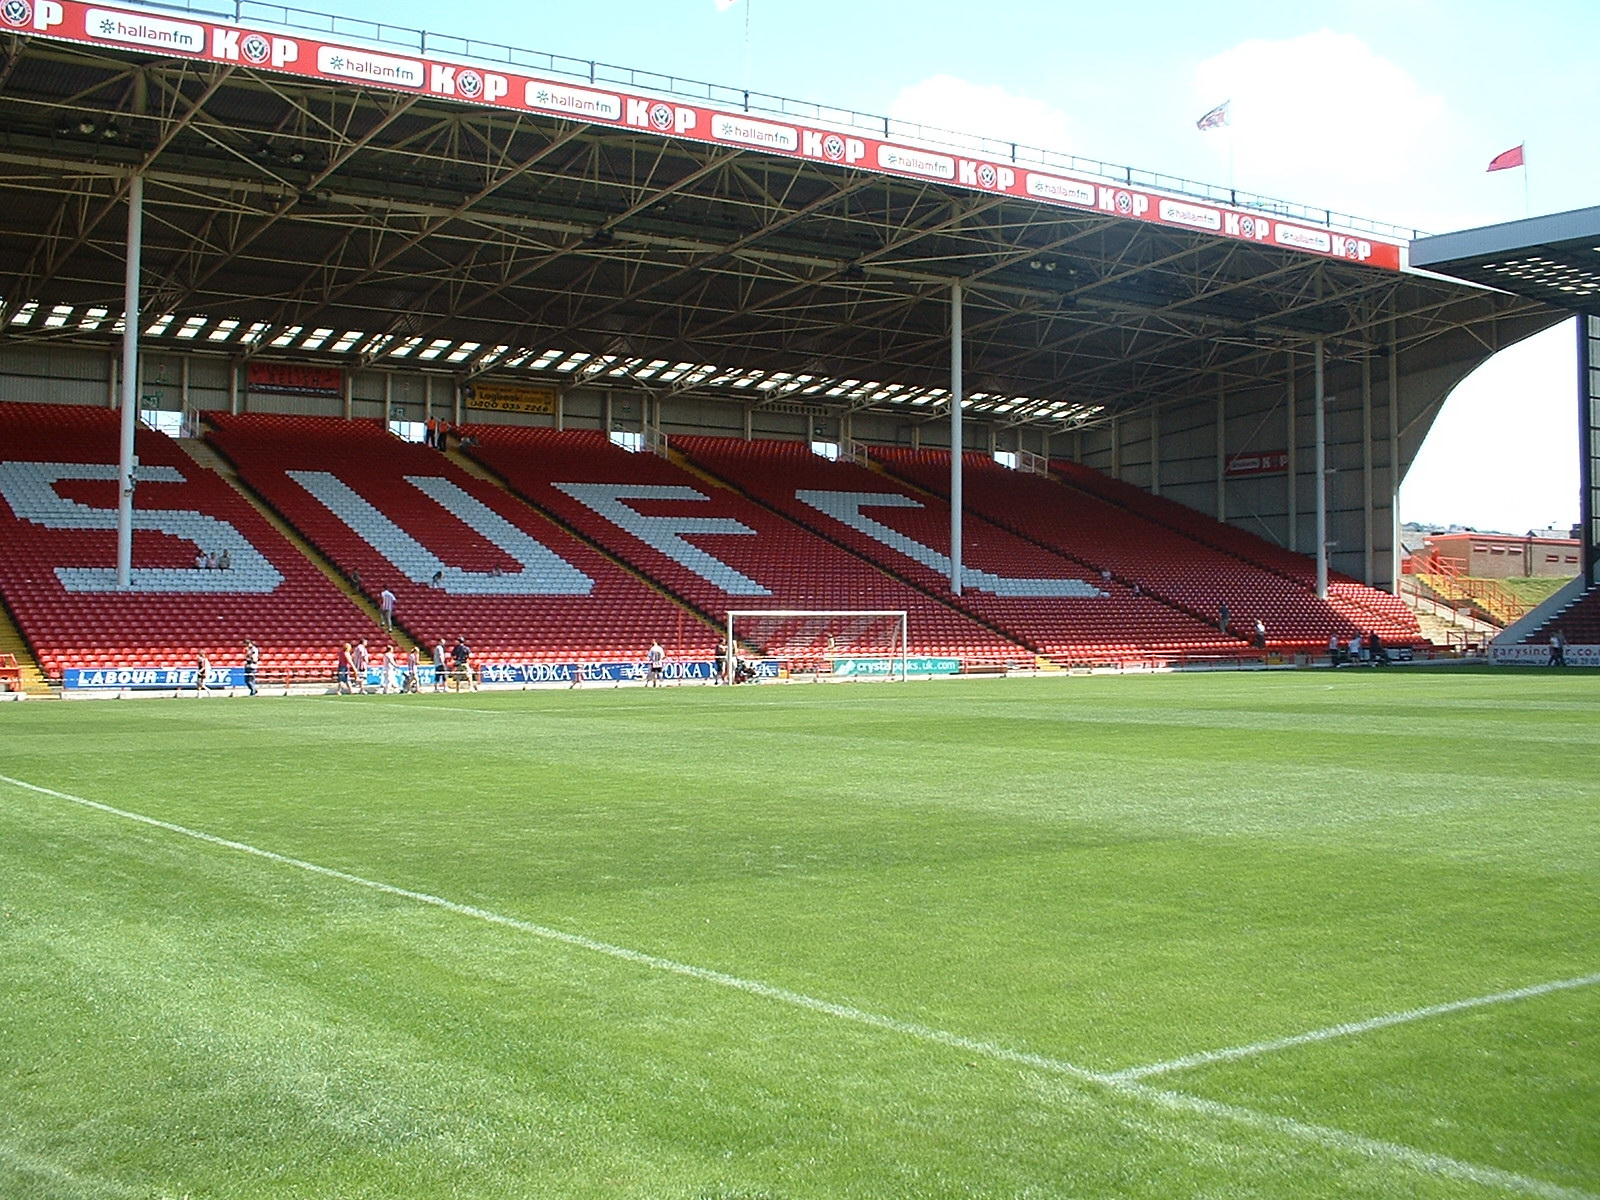 Bramall Lane Kop Kop.at.bramall.lane.jpg